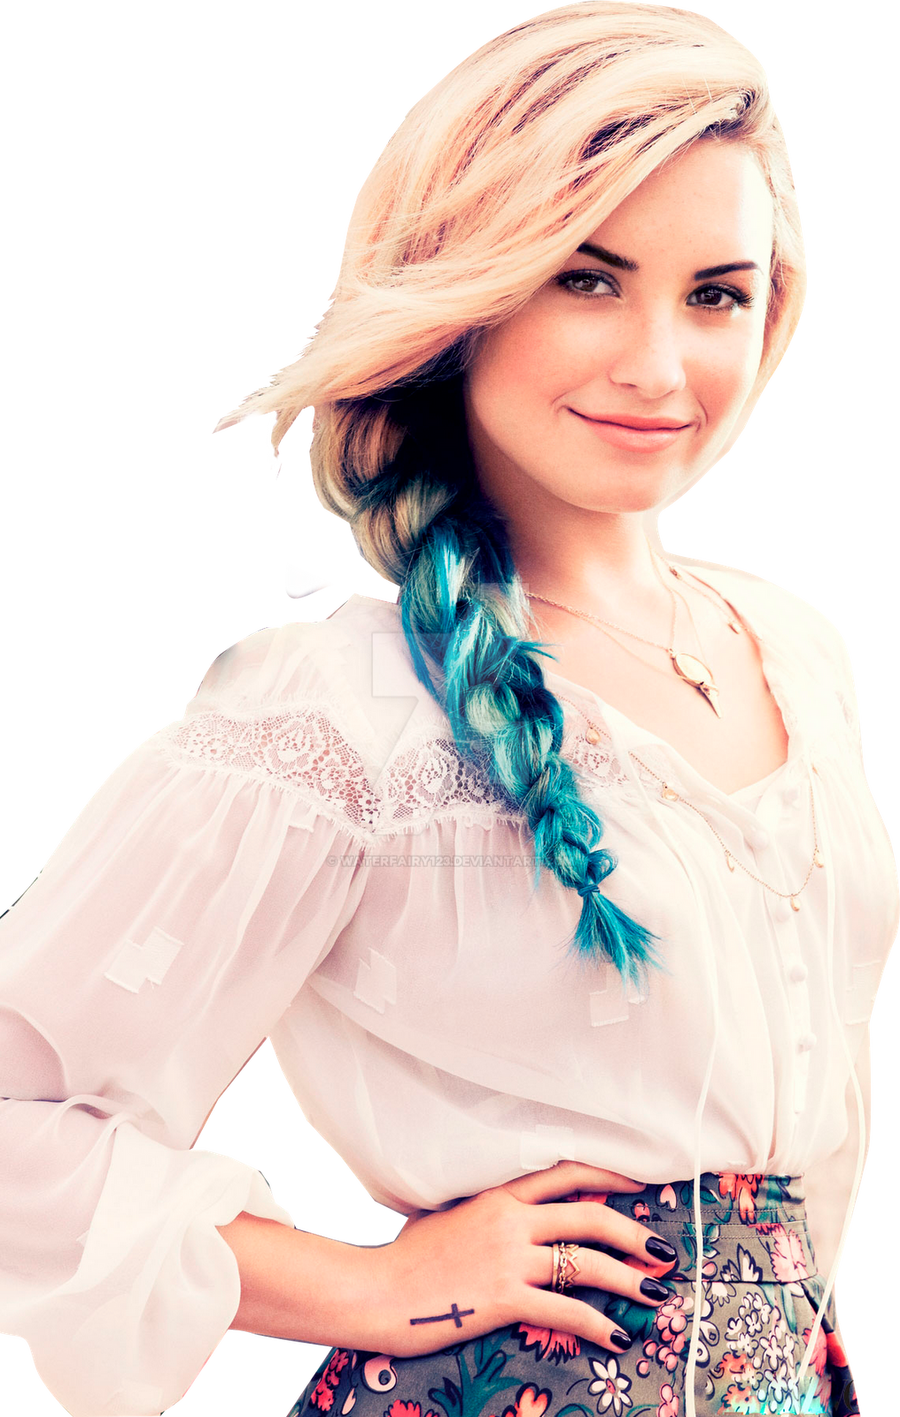 demi lovato teen vogue png 88 by waterfairy123 on deviantart